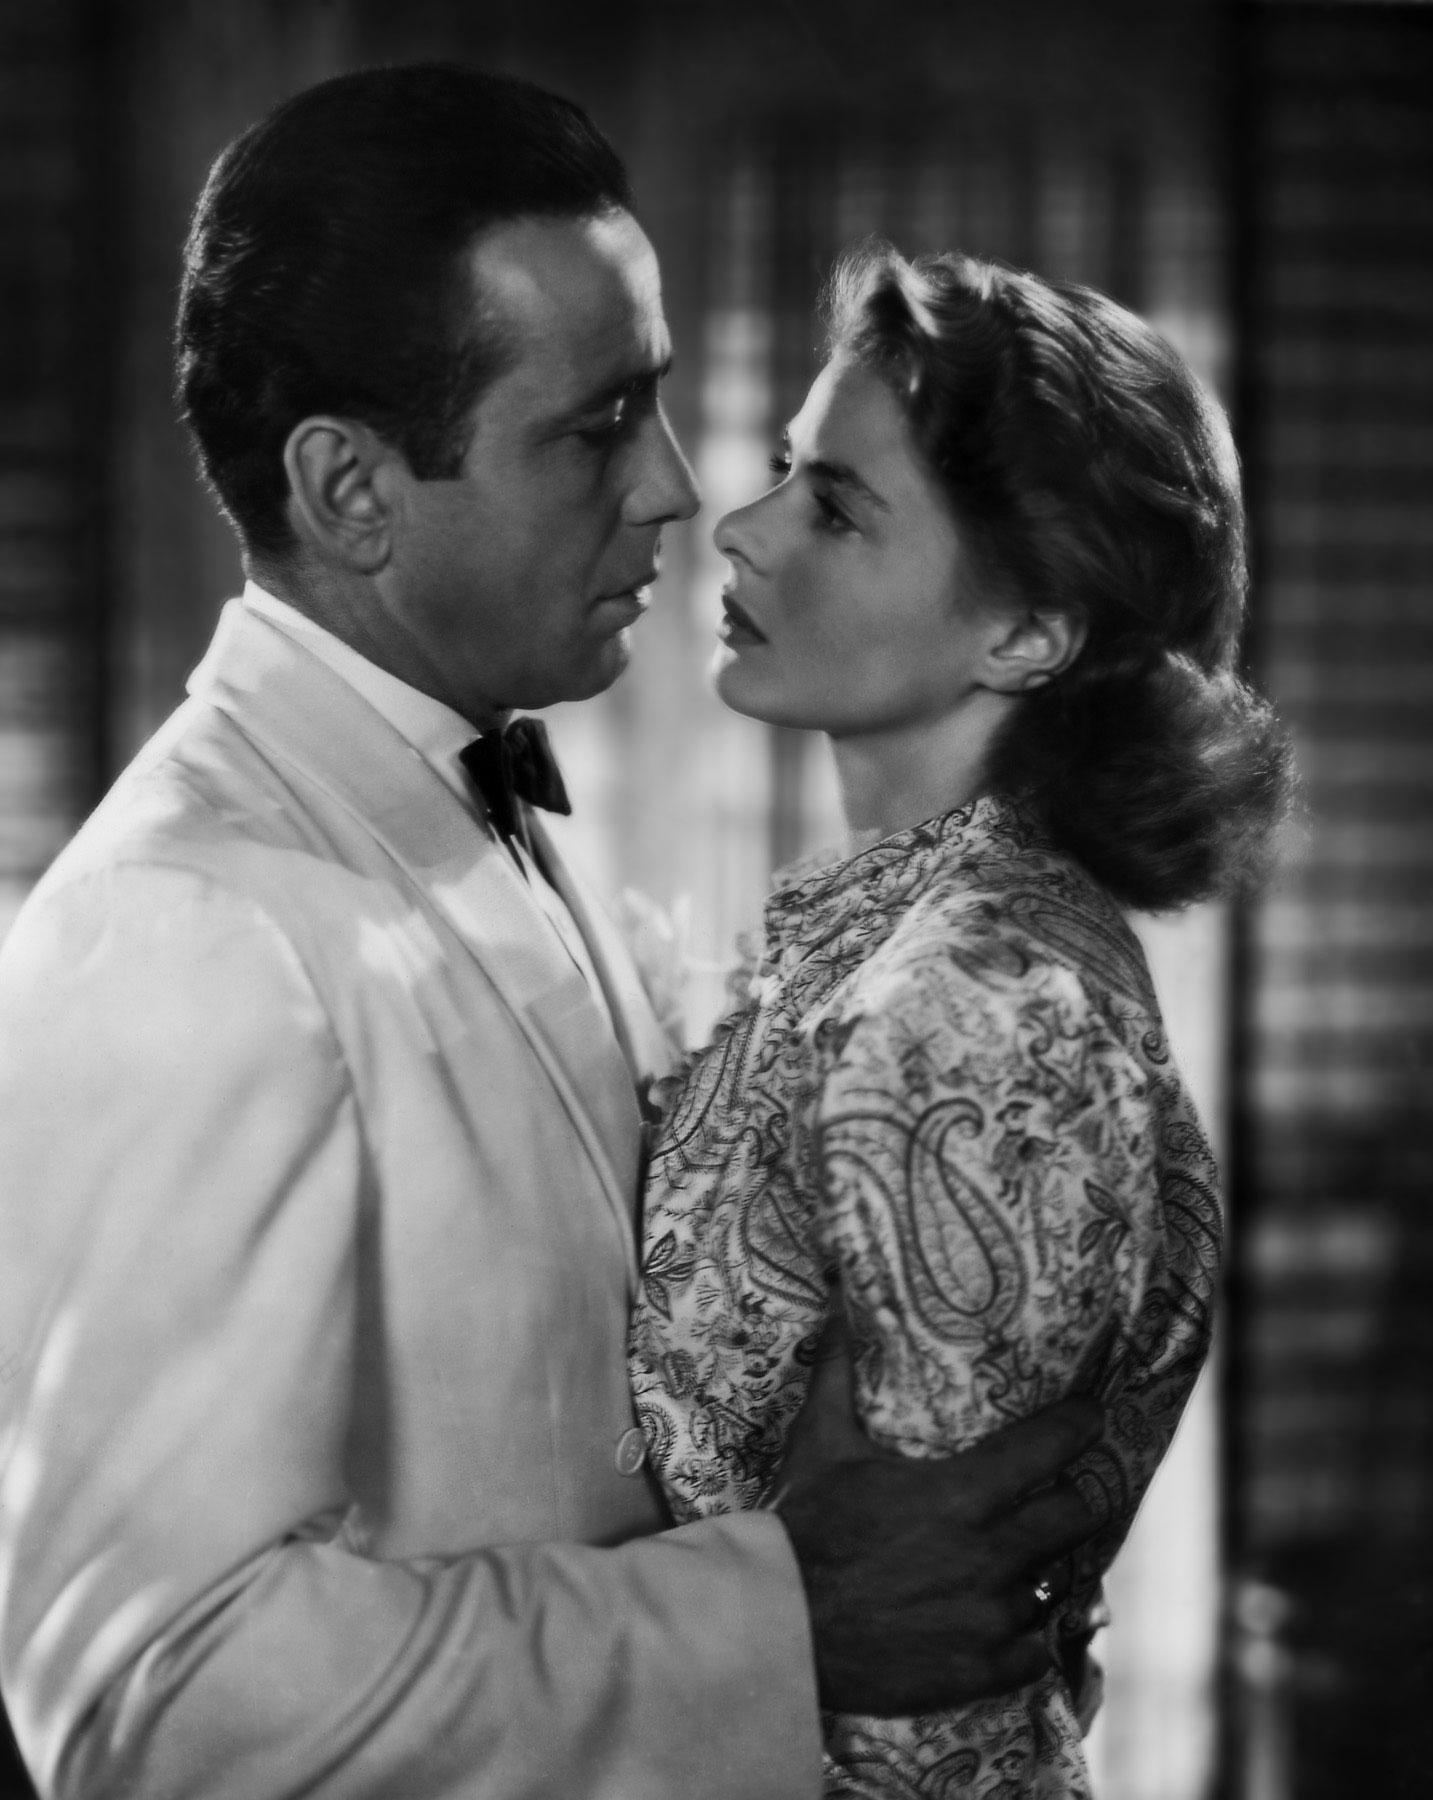 le couple mythique de Casablanca: Humphrey Bogart et Ingrid Bergman